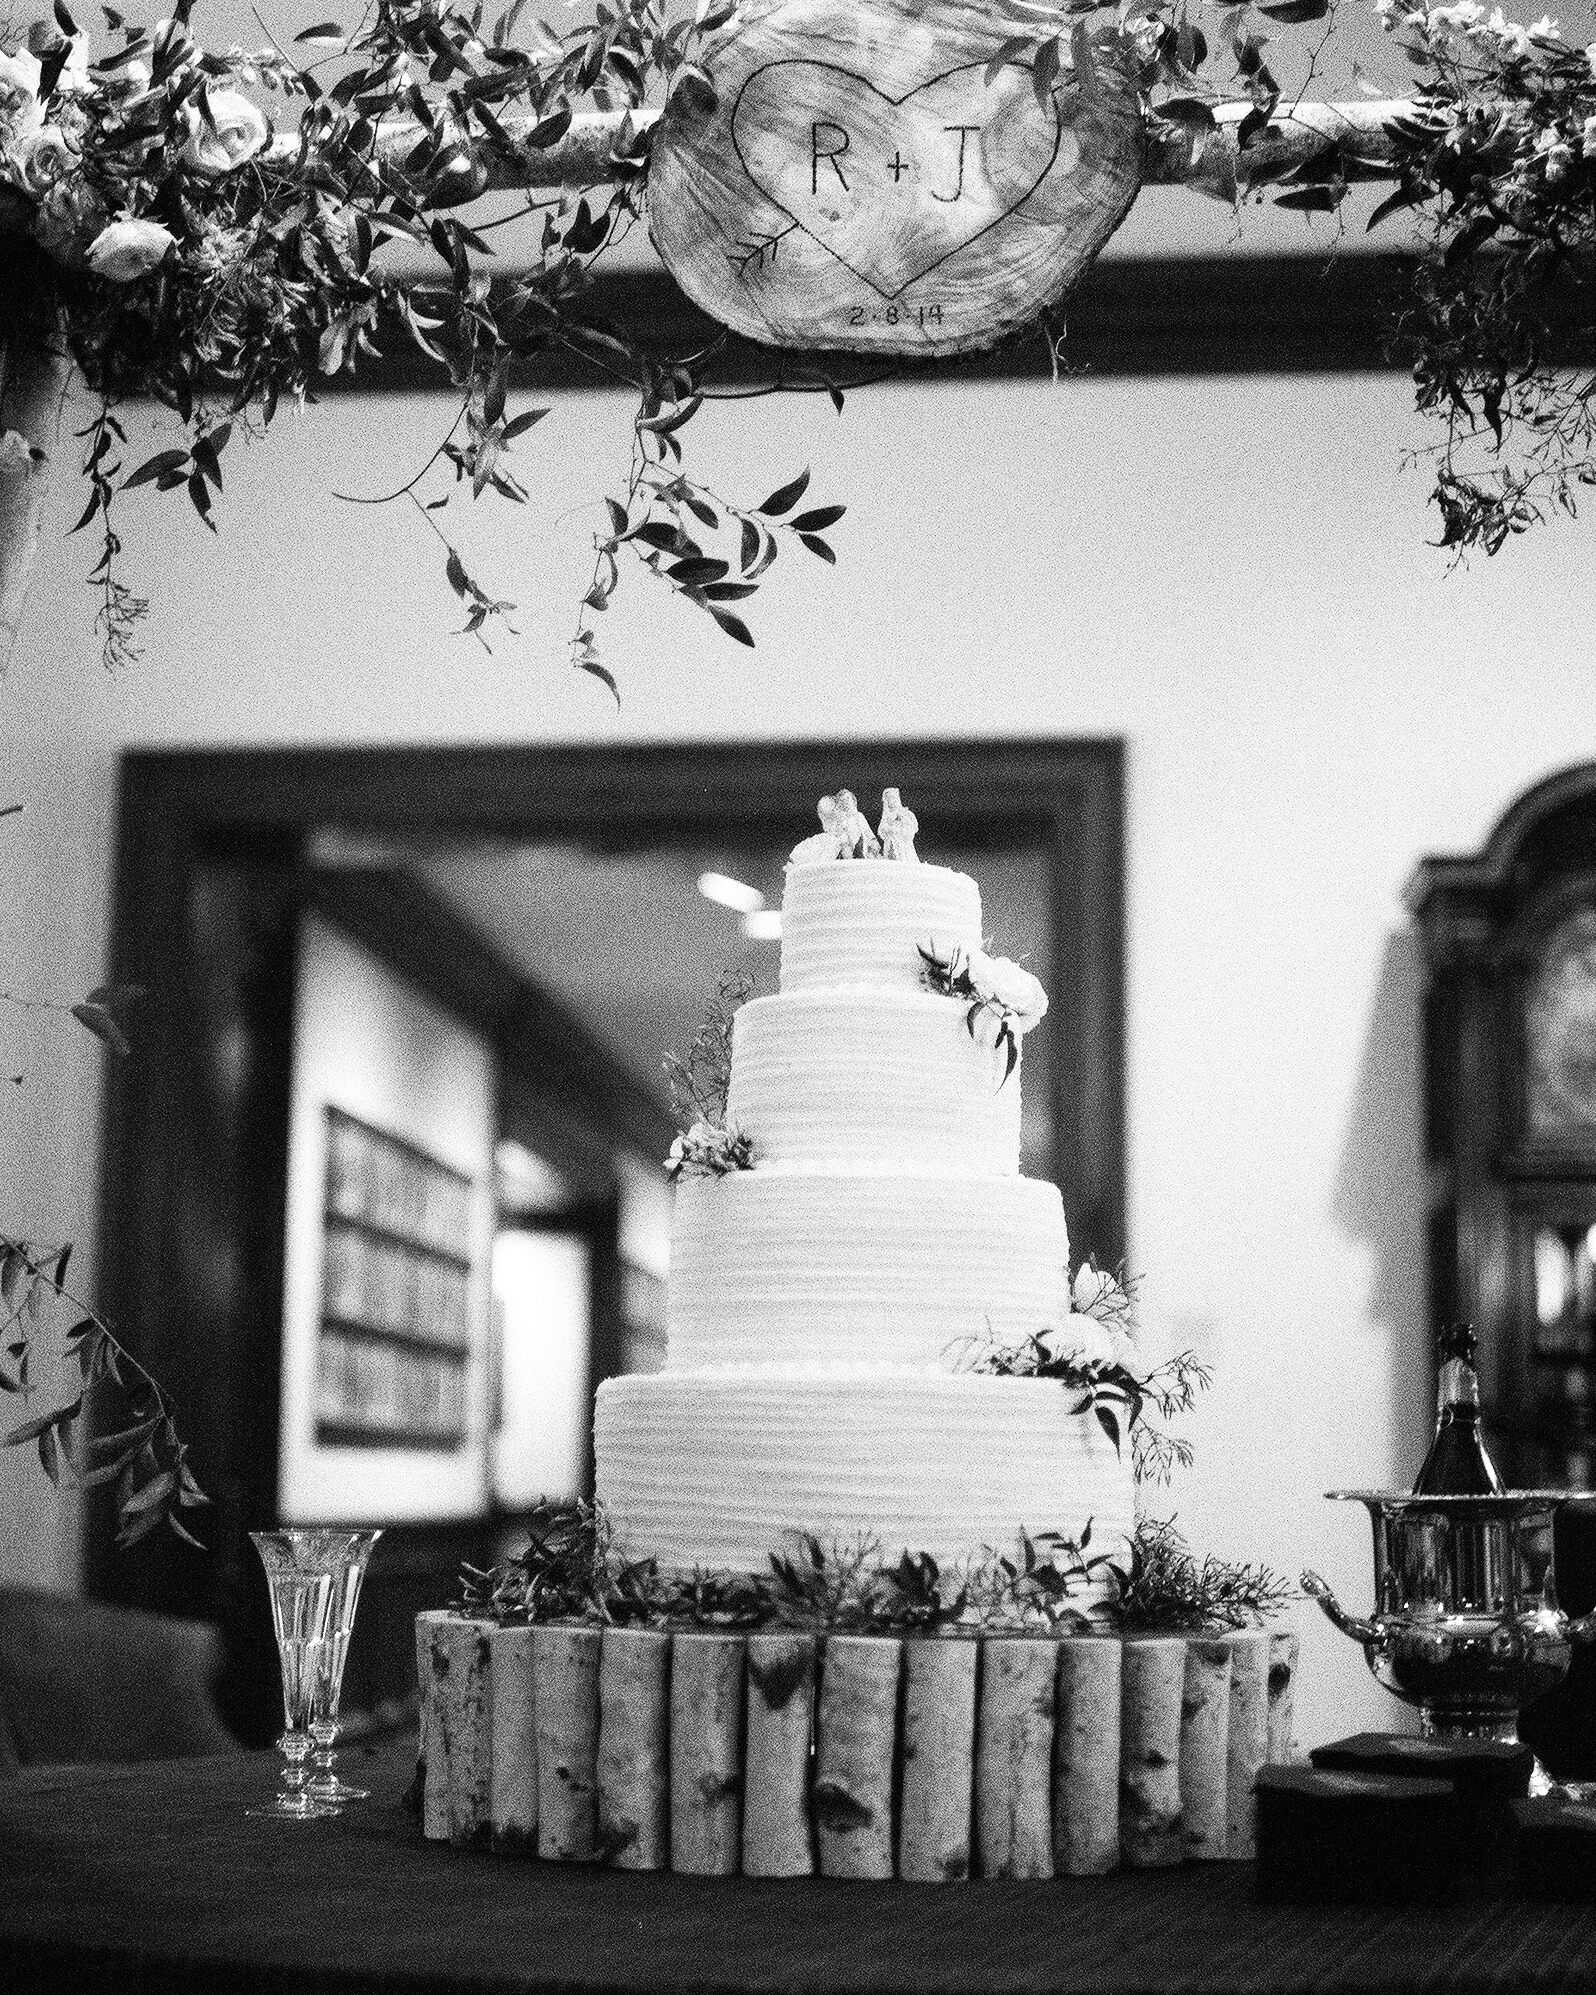 jane-ryan-wedding-cake2-171-s111352-0714.jpg